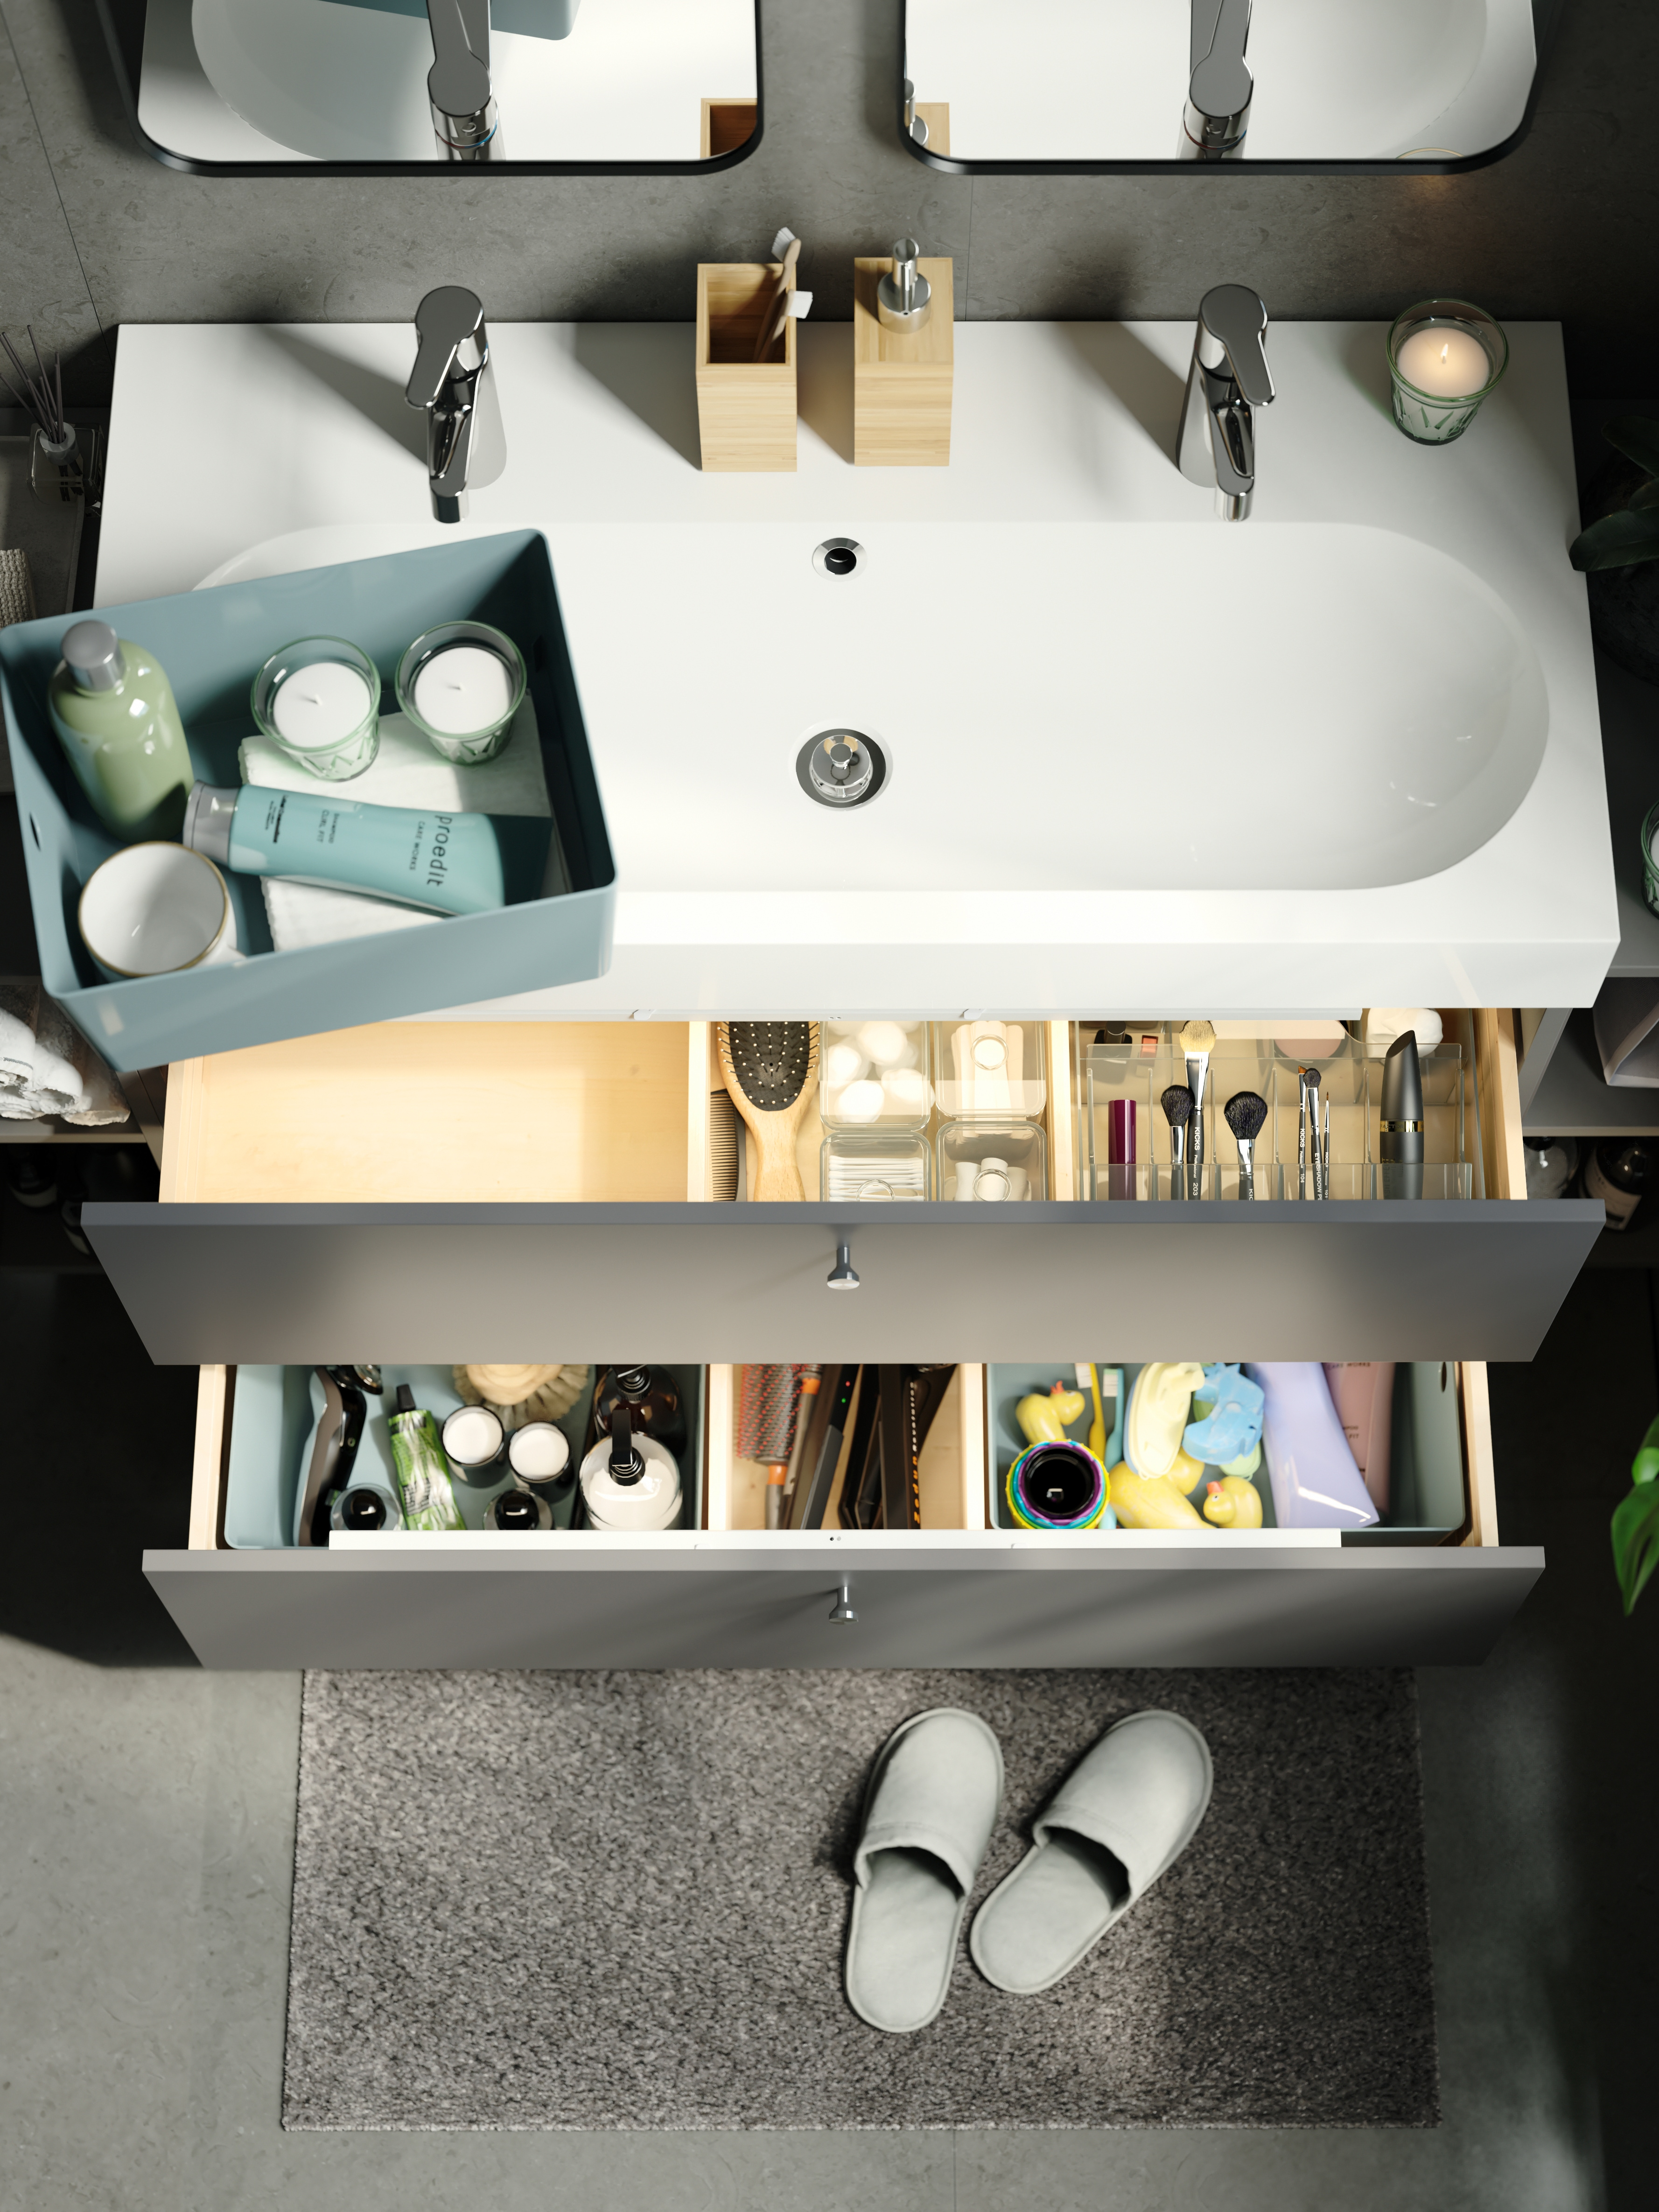 Open drawers of a washstand containing a smoked GODMORGON box with compartments and green storage boxes with toiletries.